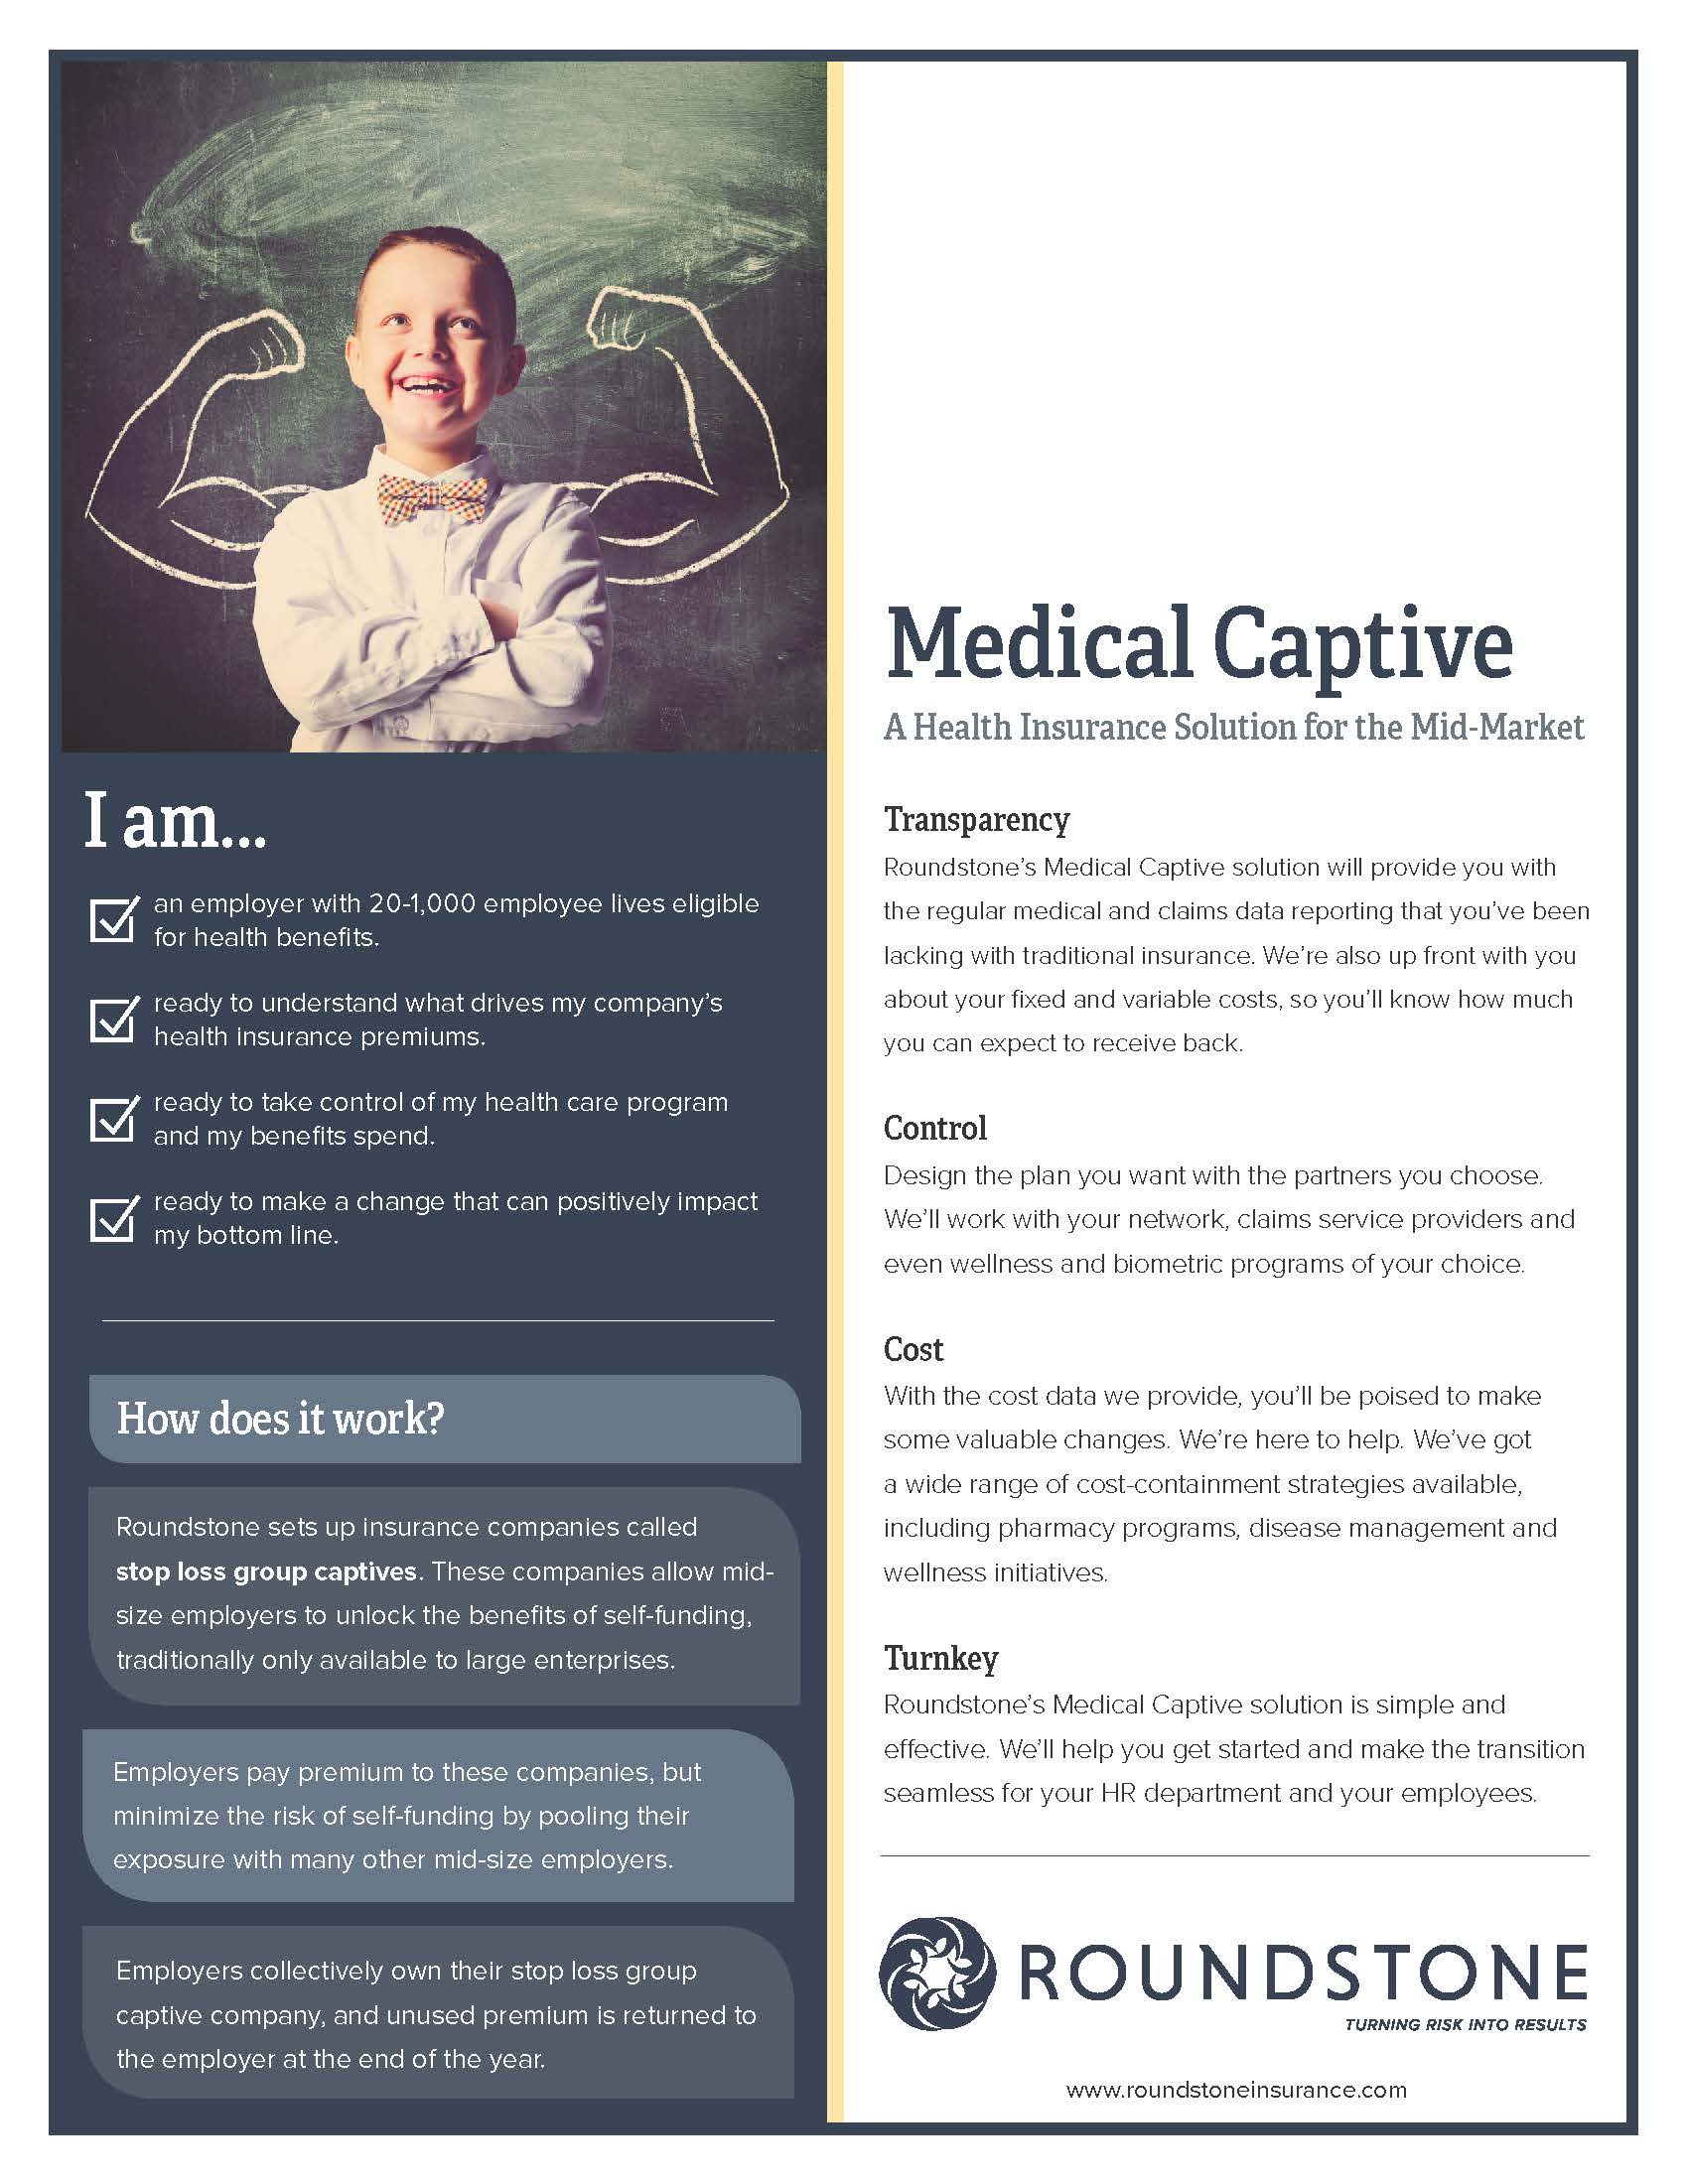 Medical Captive Fact Sheet.jpg